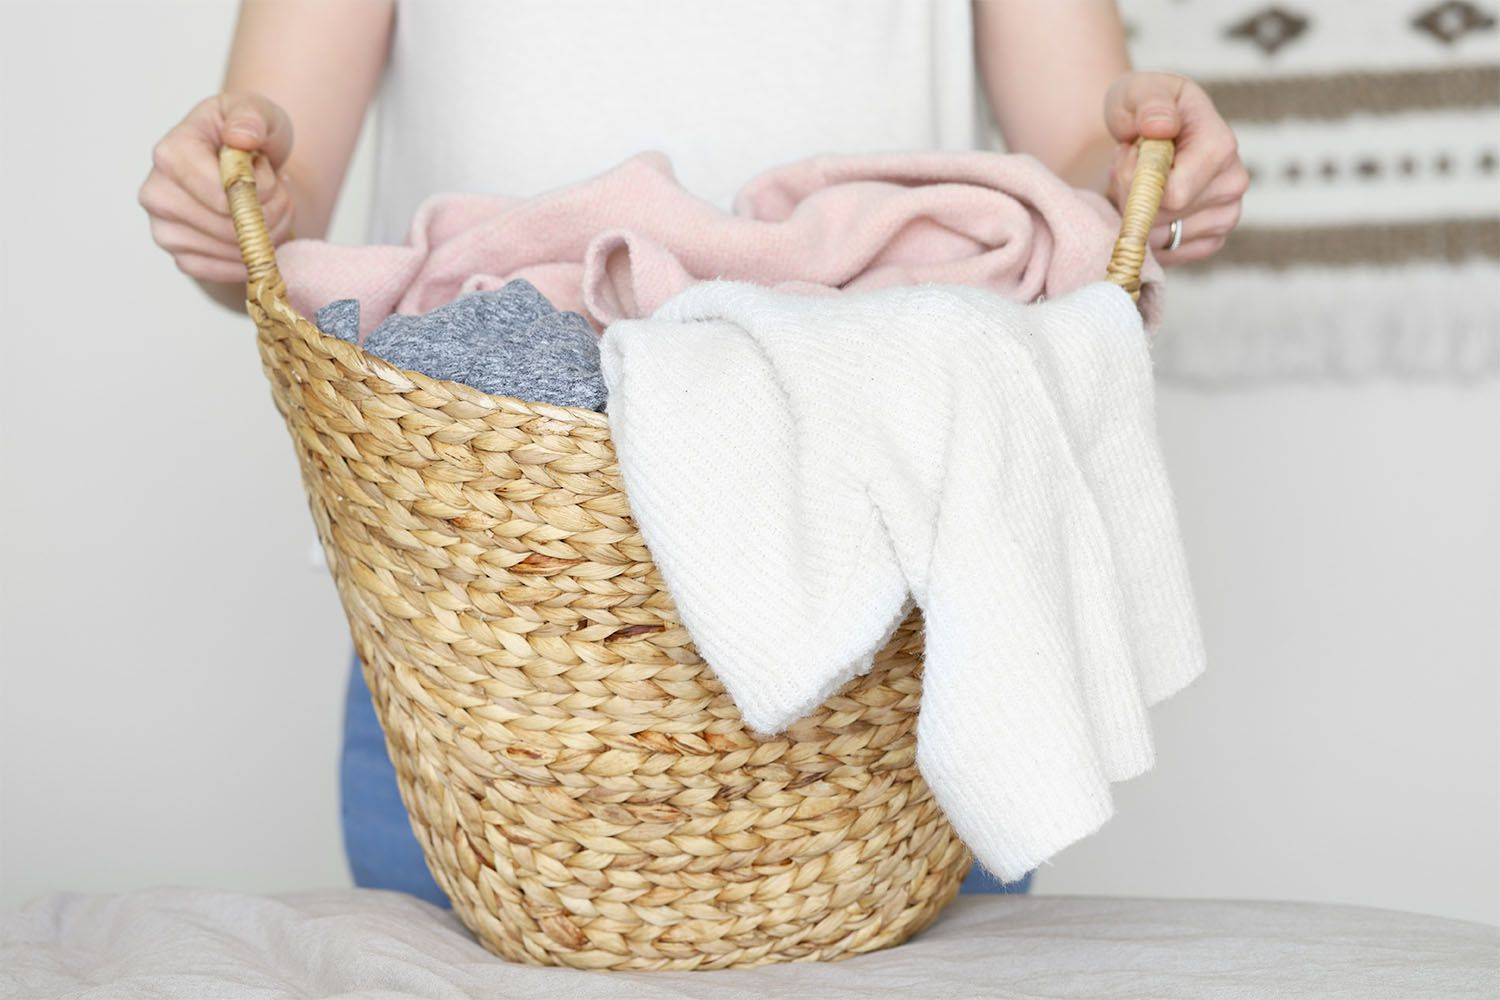 removing clothes from the dryer